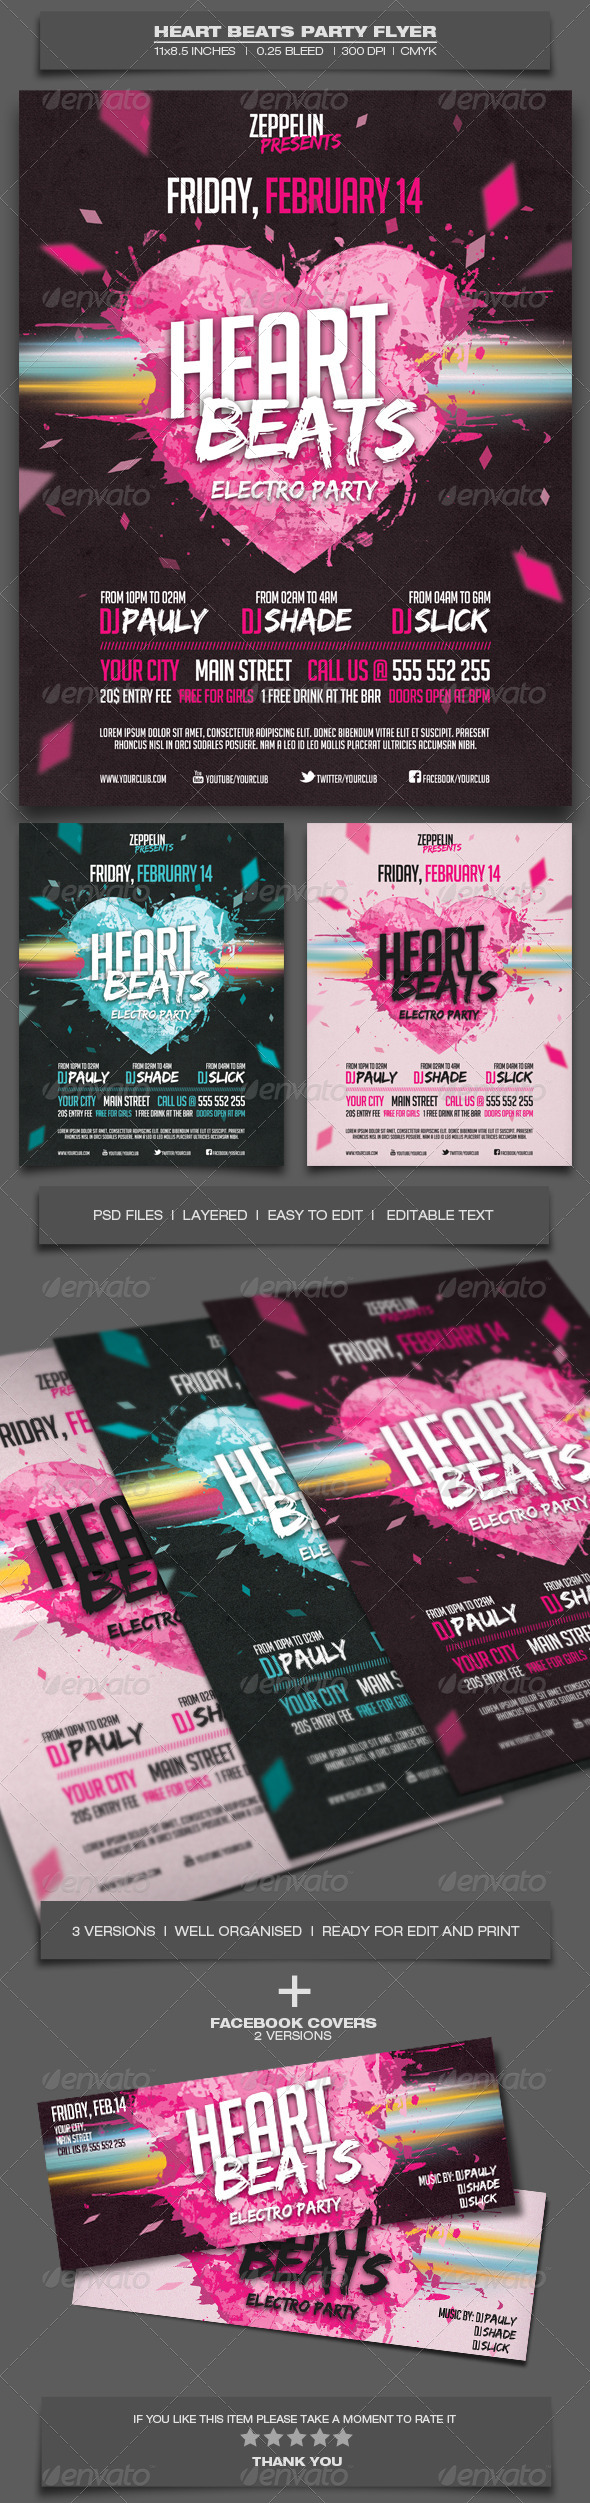 GraphicRiver Heart Beats Party Event Flyer Template 6618310